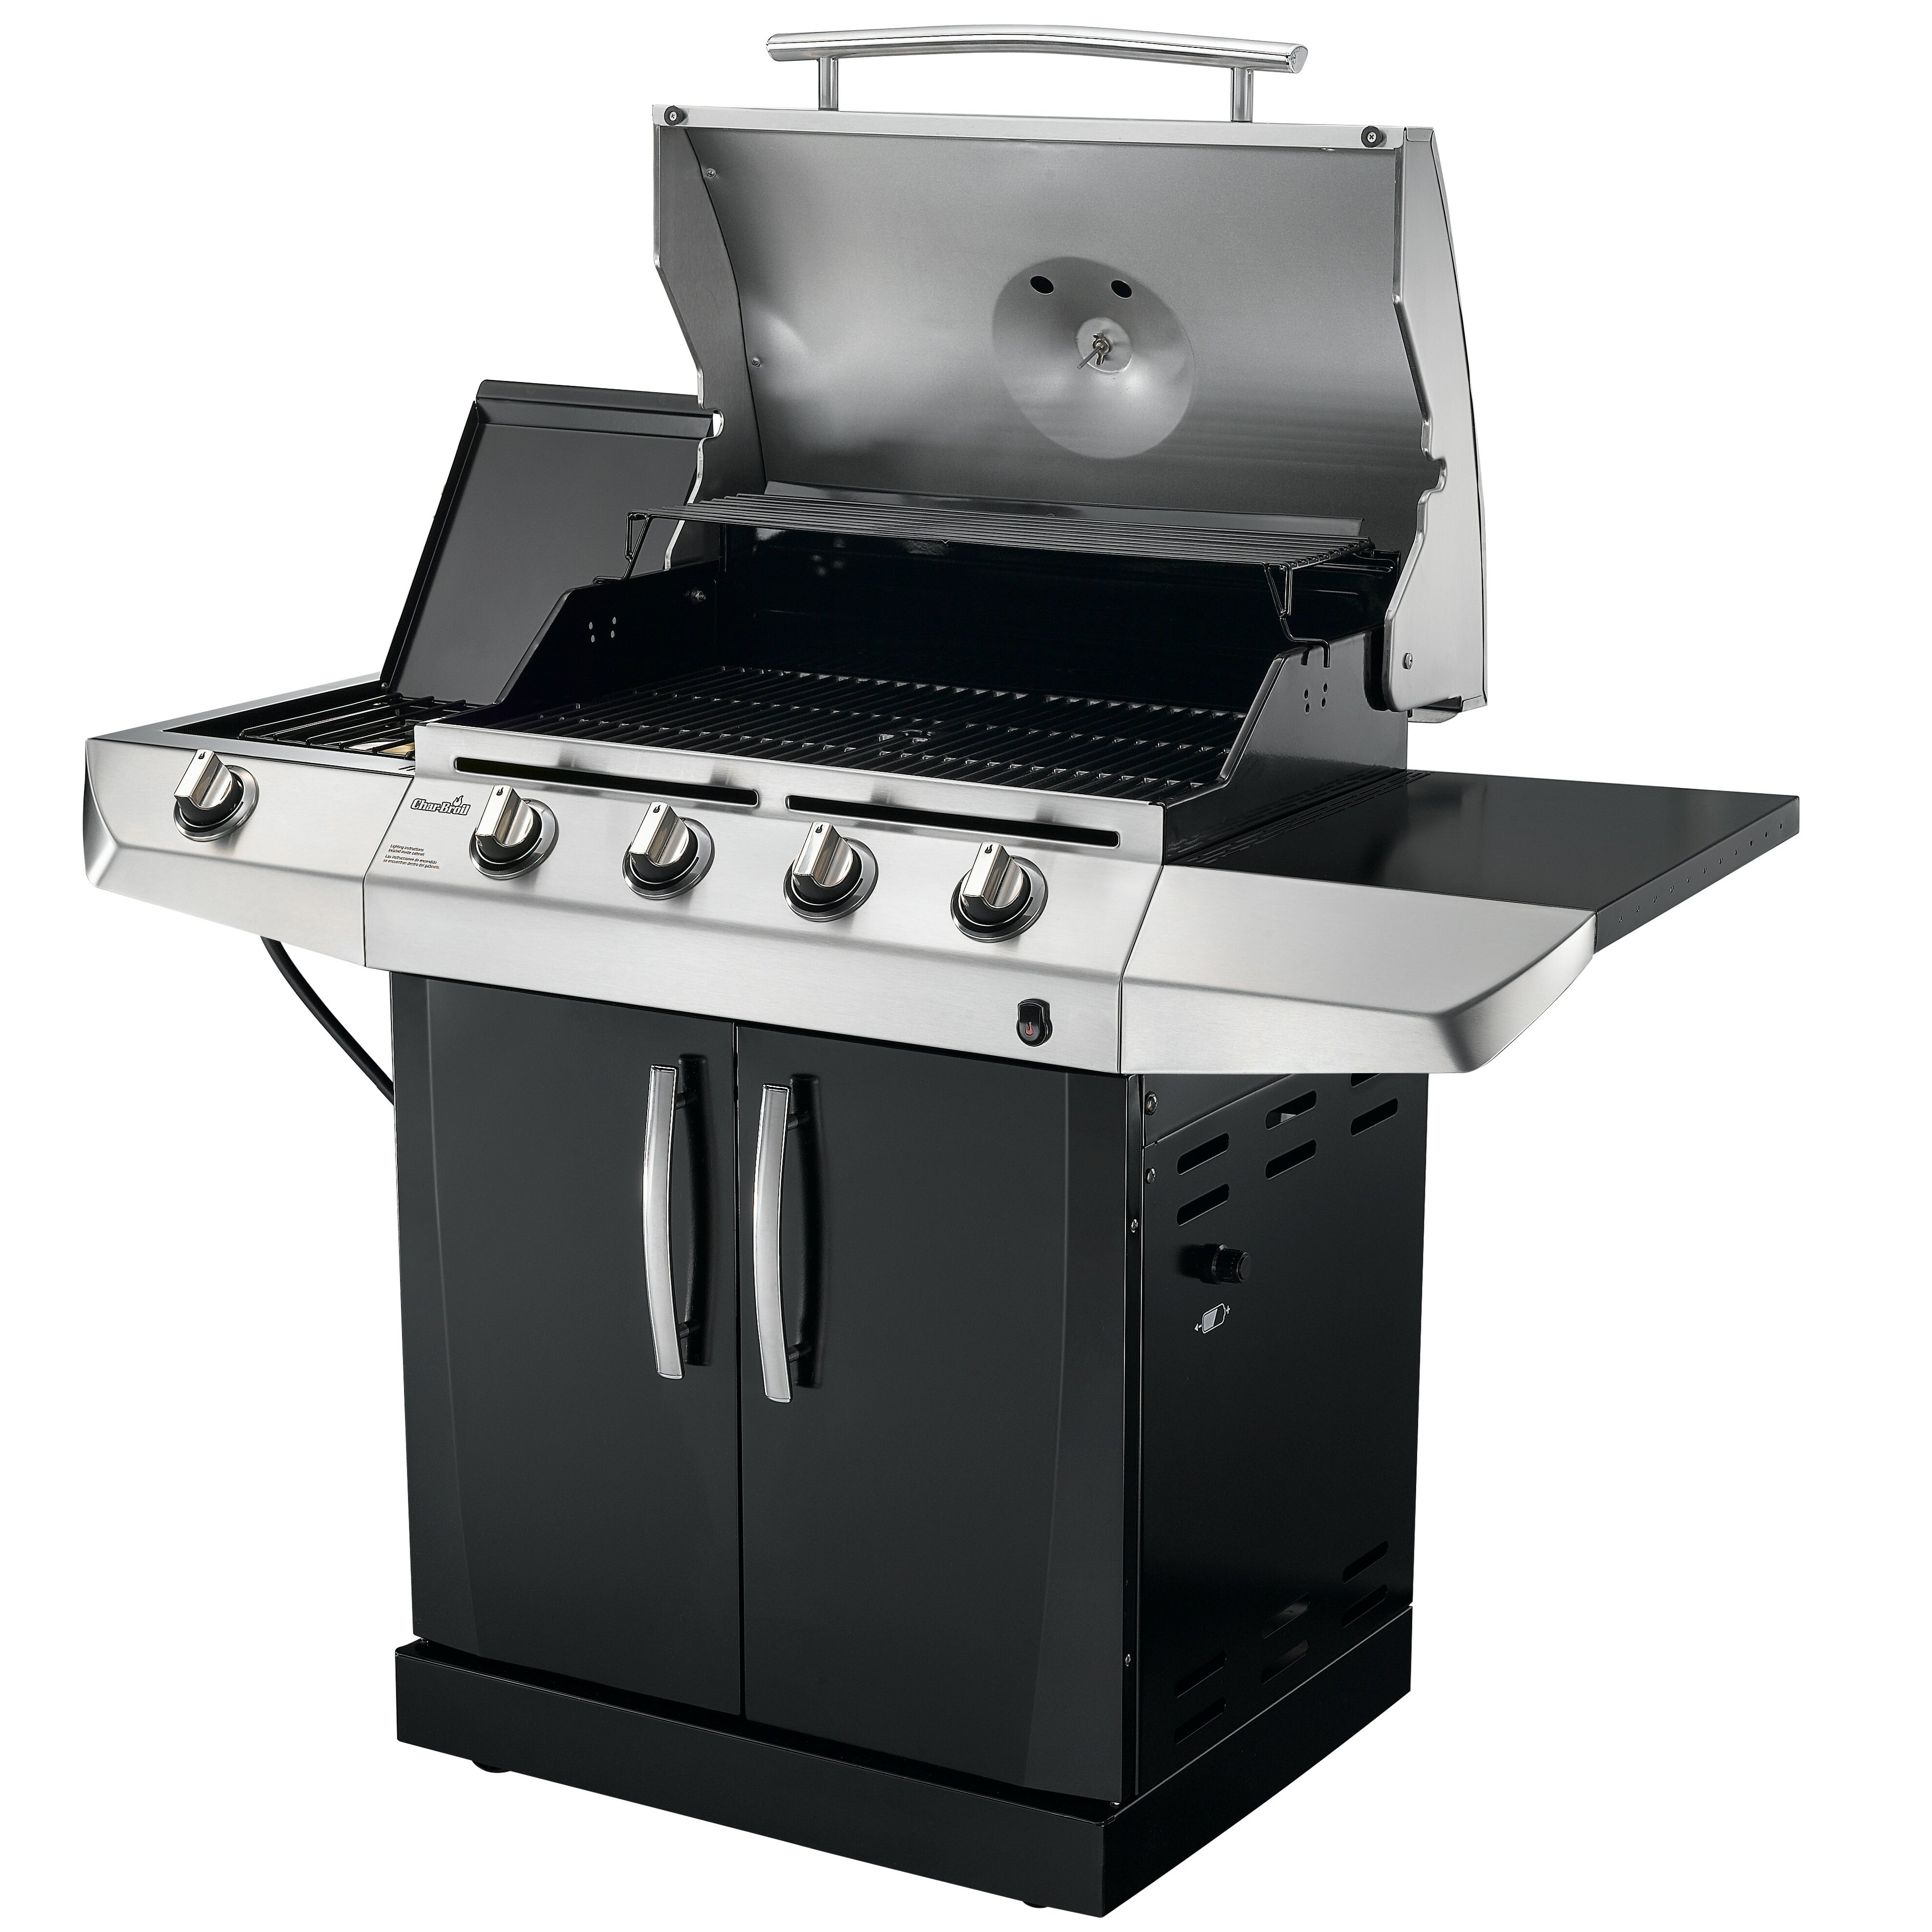 Sides On The Grill: Gas Grill With Side Burner